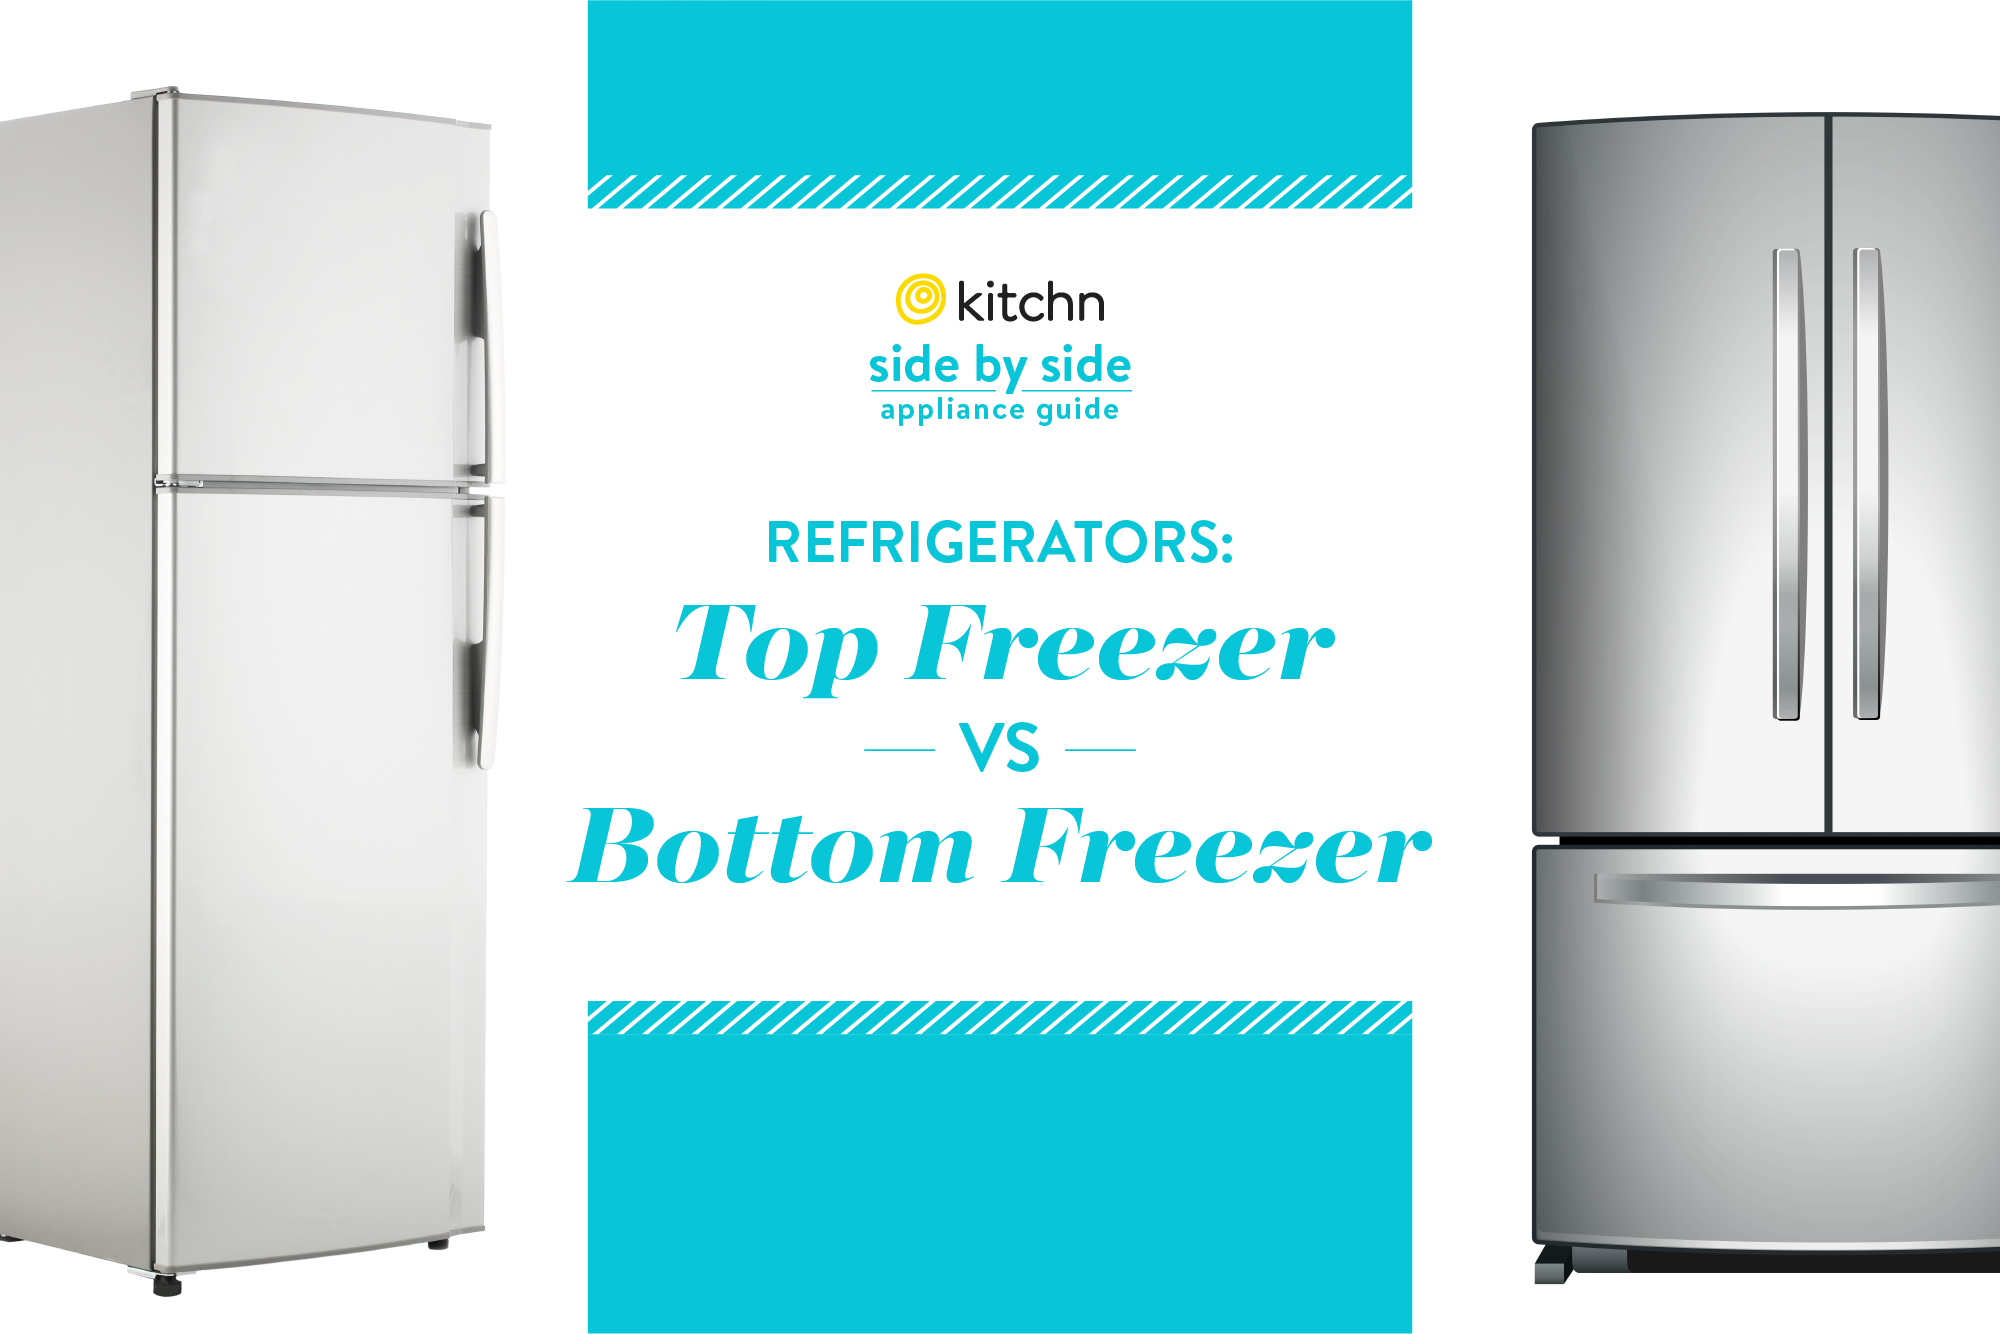 What's Better, a Top Freezer or a Bottom Freezer? | Kitchn